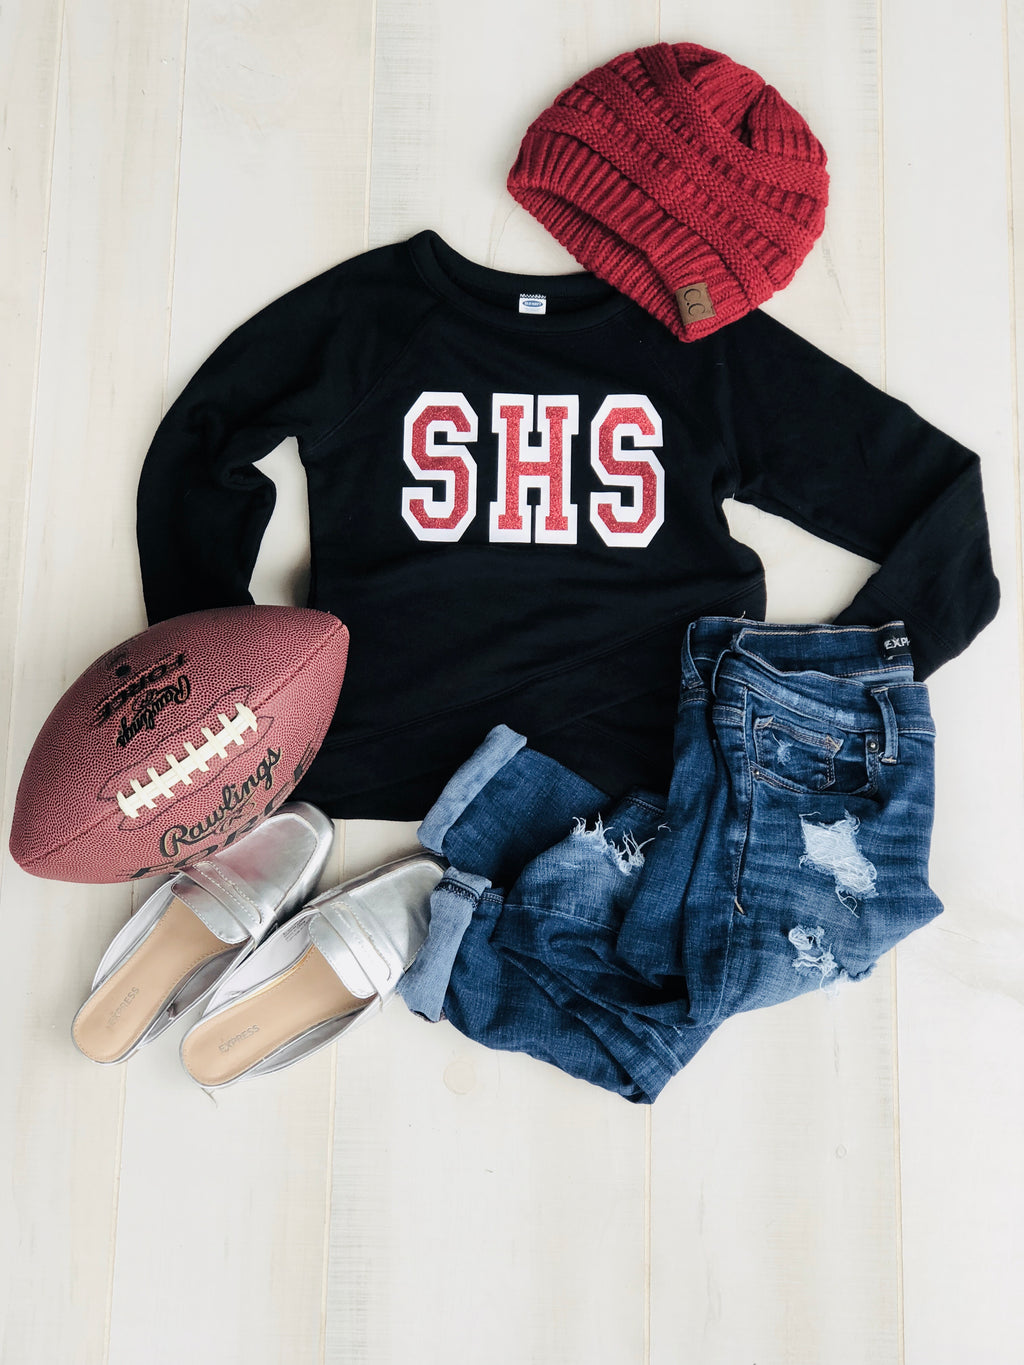 SHS CRISS CROSS SWEATSHIRT